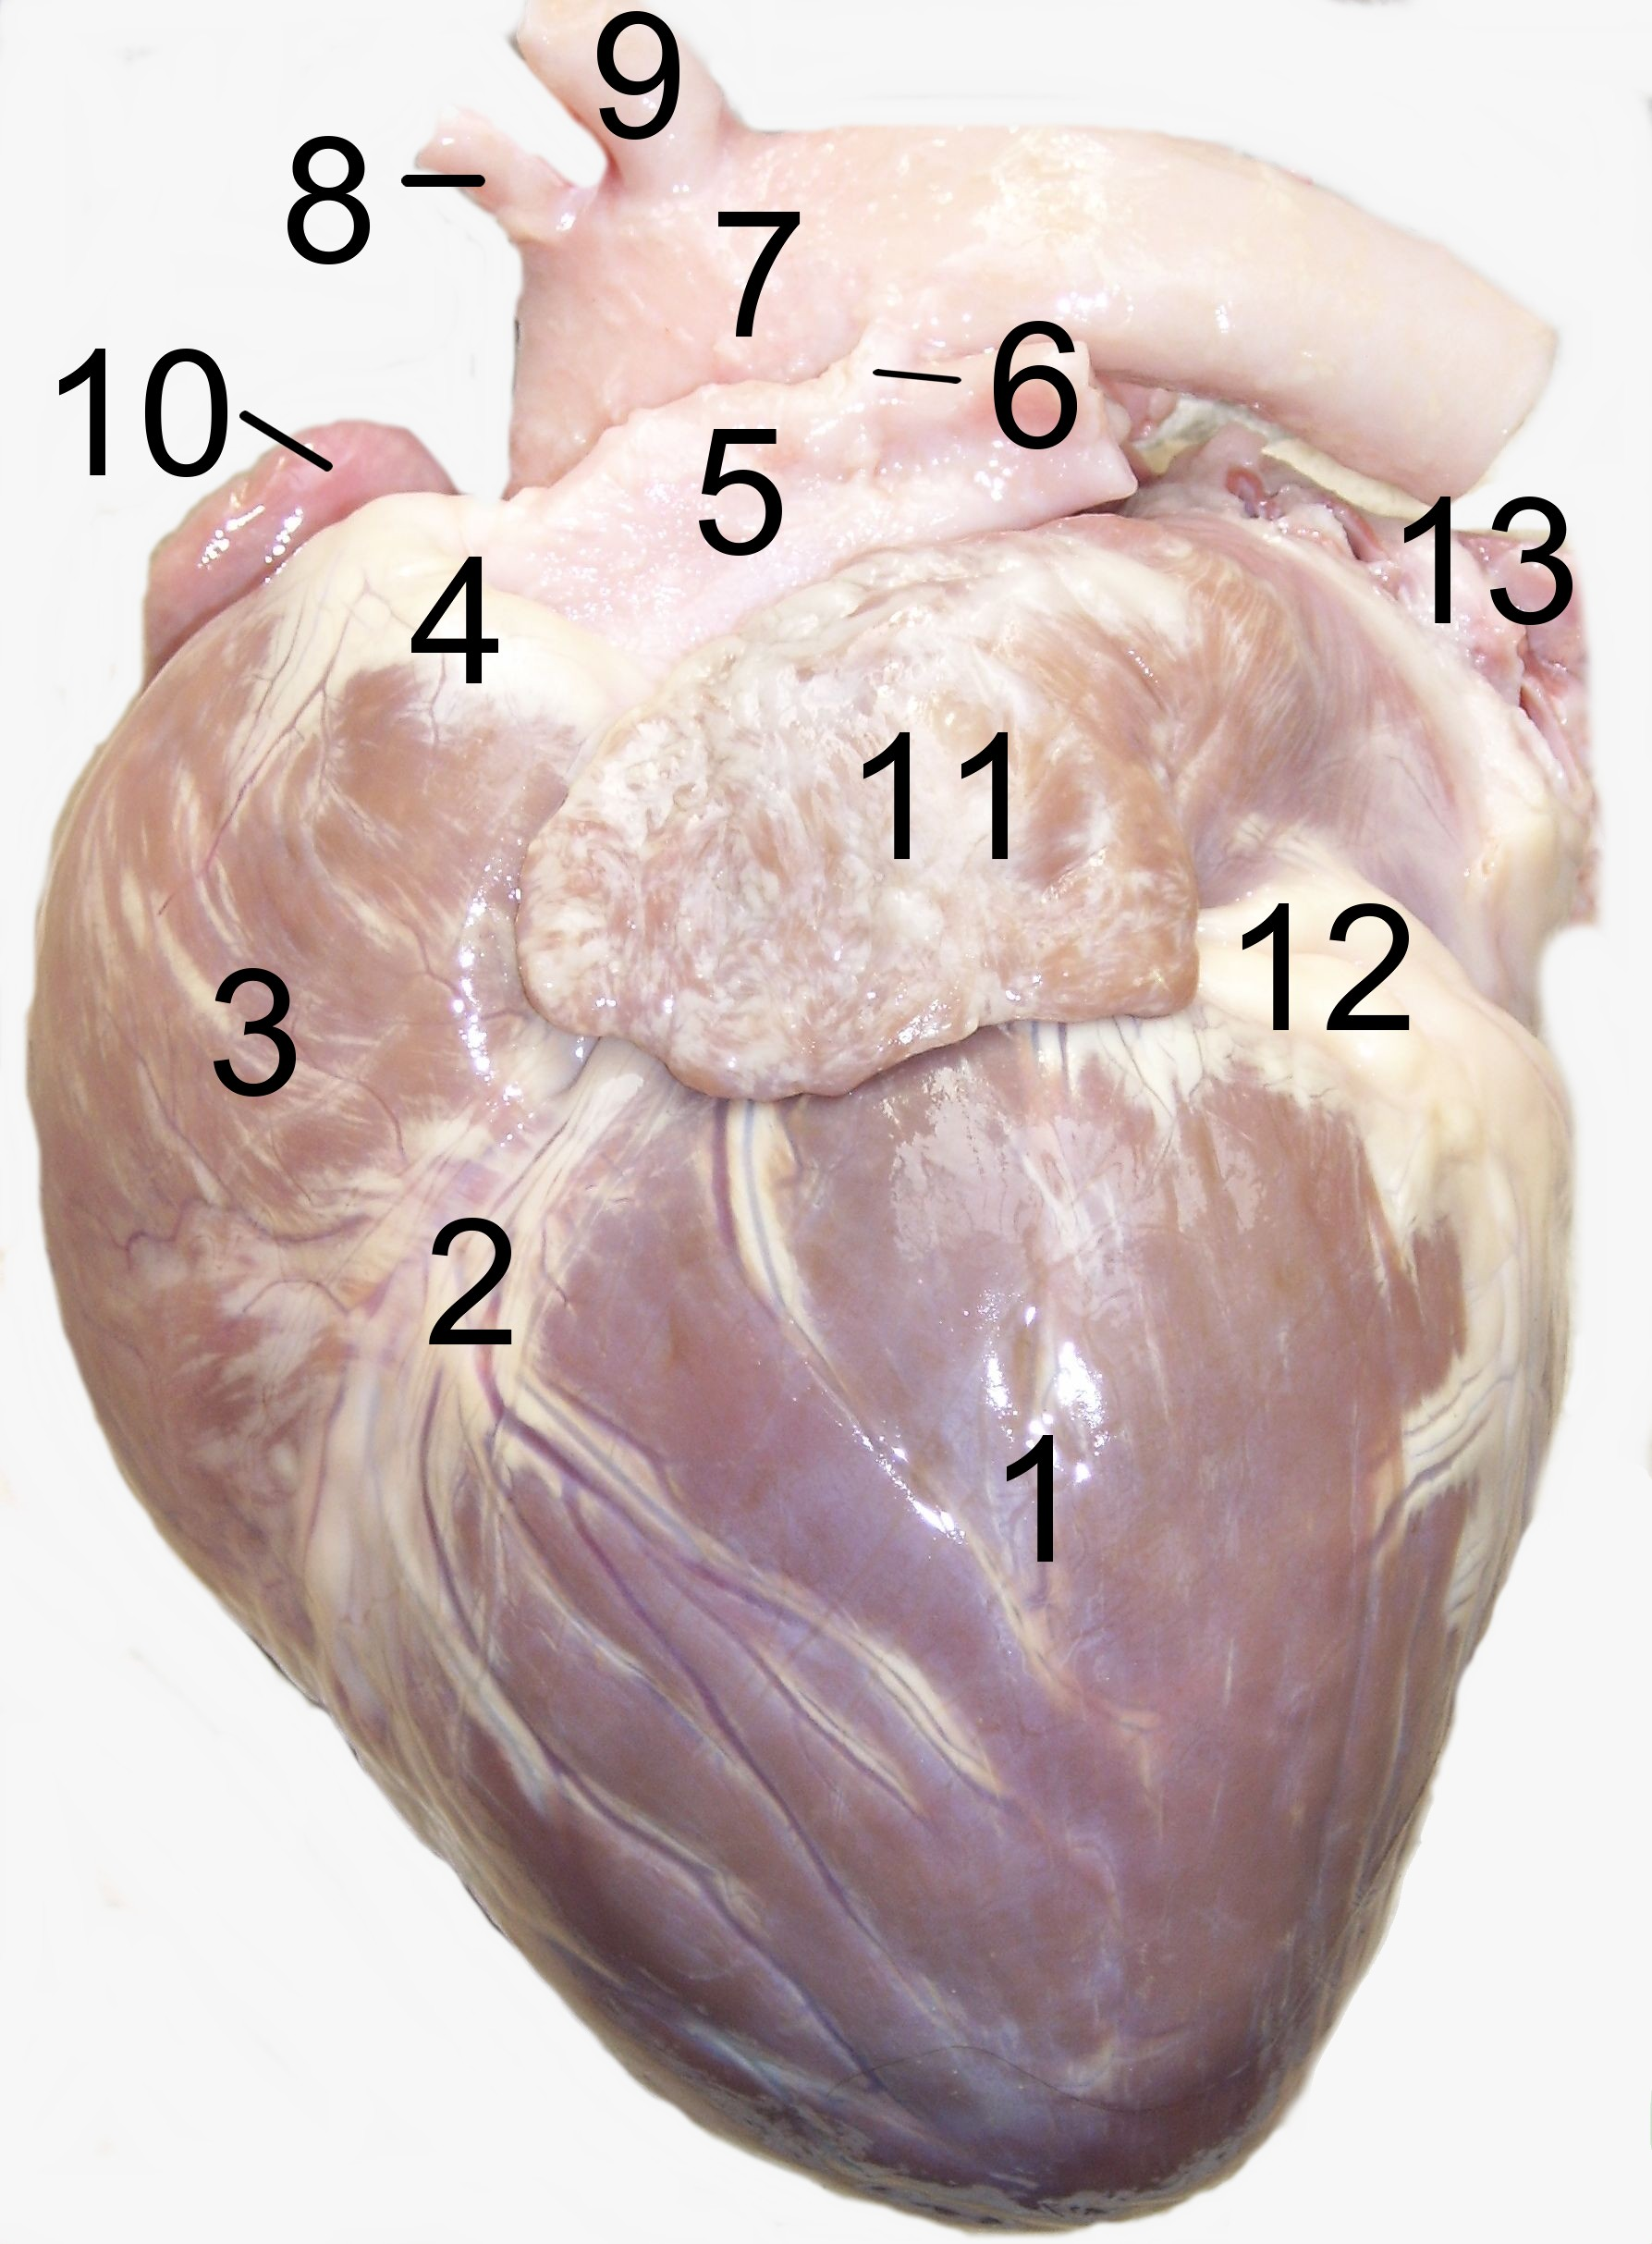 File:Dog heart 2.jpg - Wikimedia Commons